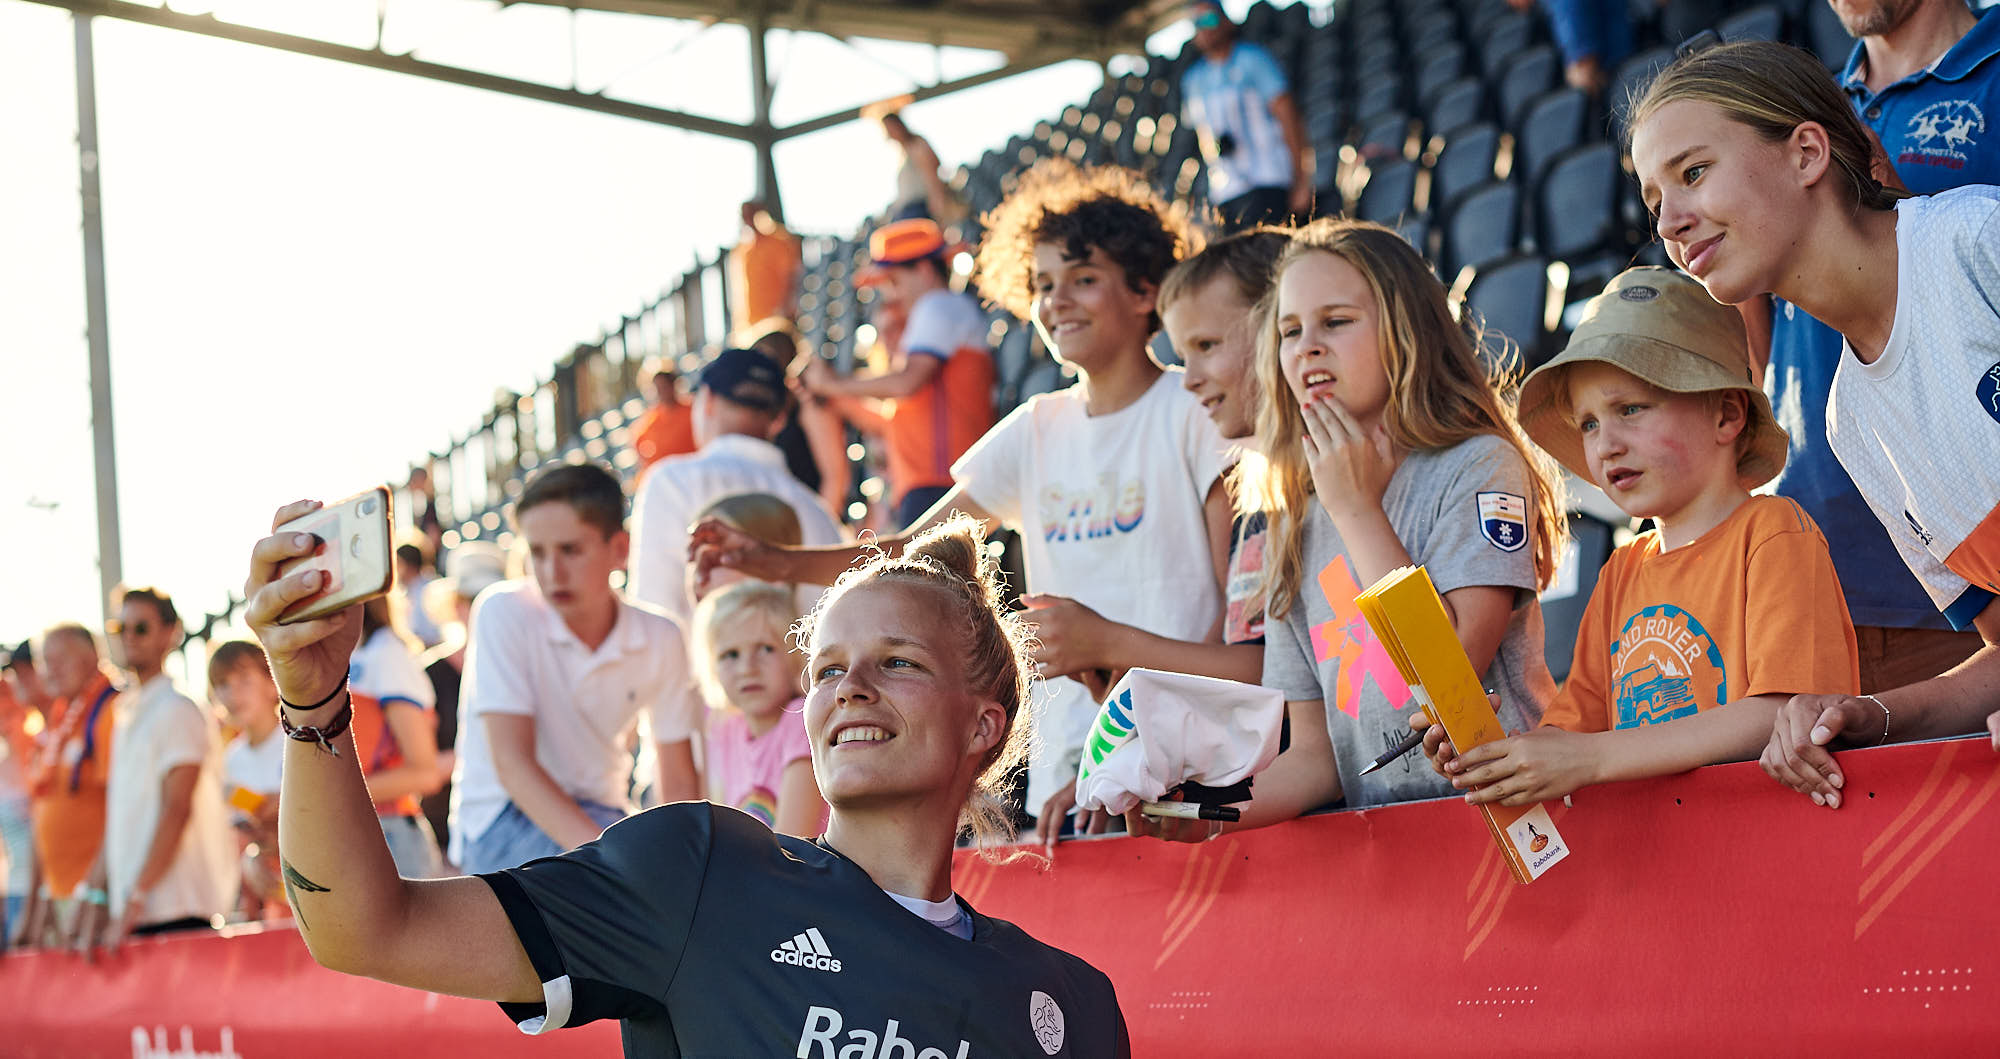 Dutch national hockey team player taking a selfie with fans at FIH pro league finals 2019 in Amsterdam